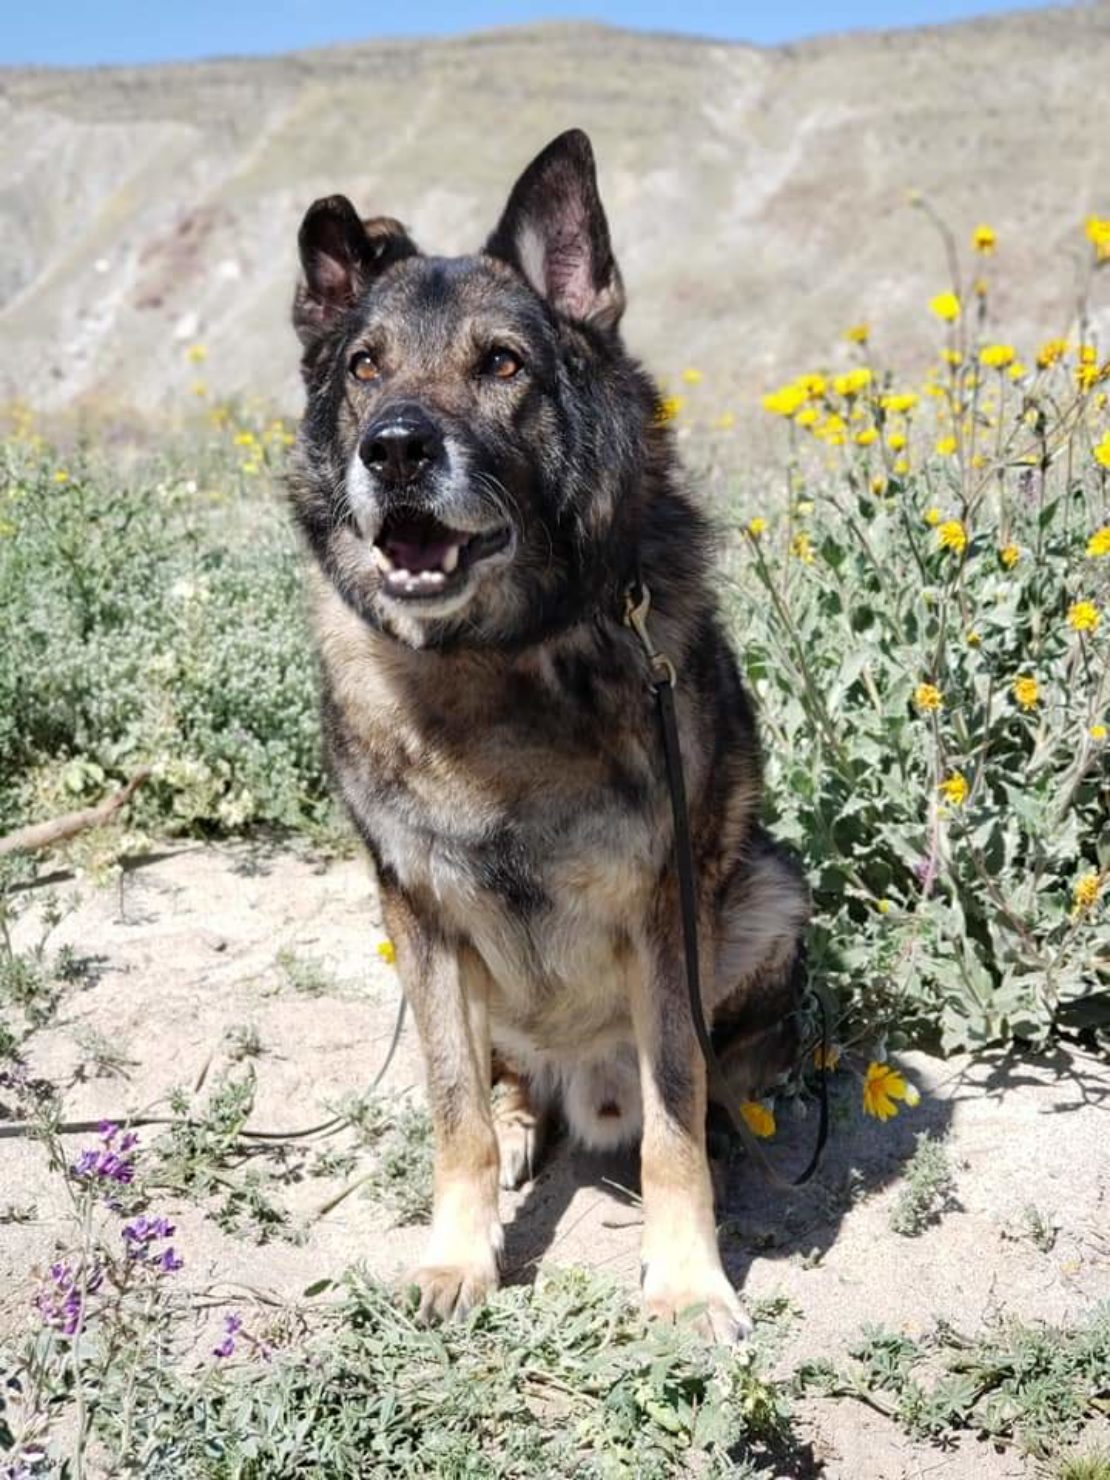 brown and black German shepherd sits on the dirt in a brush-covered area, with yellow flowers in background